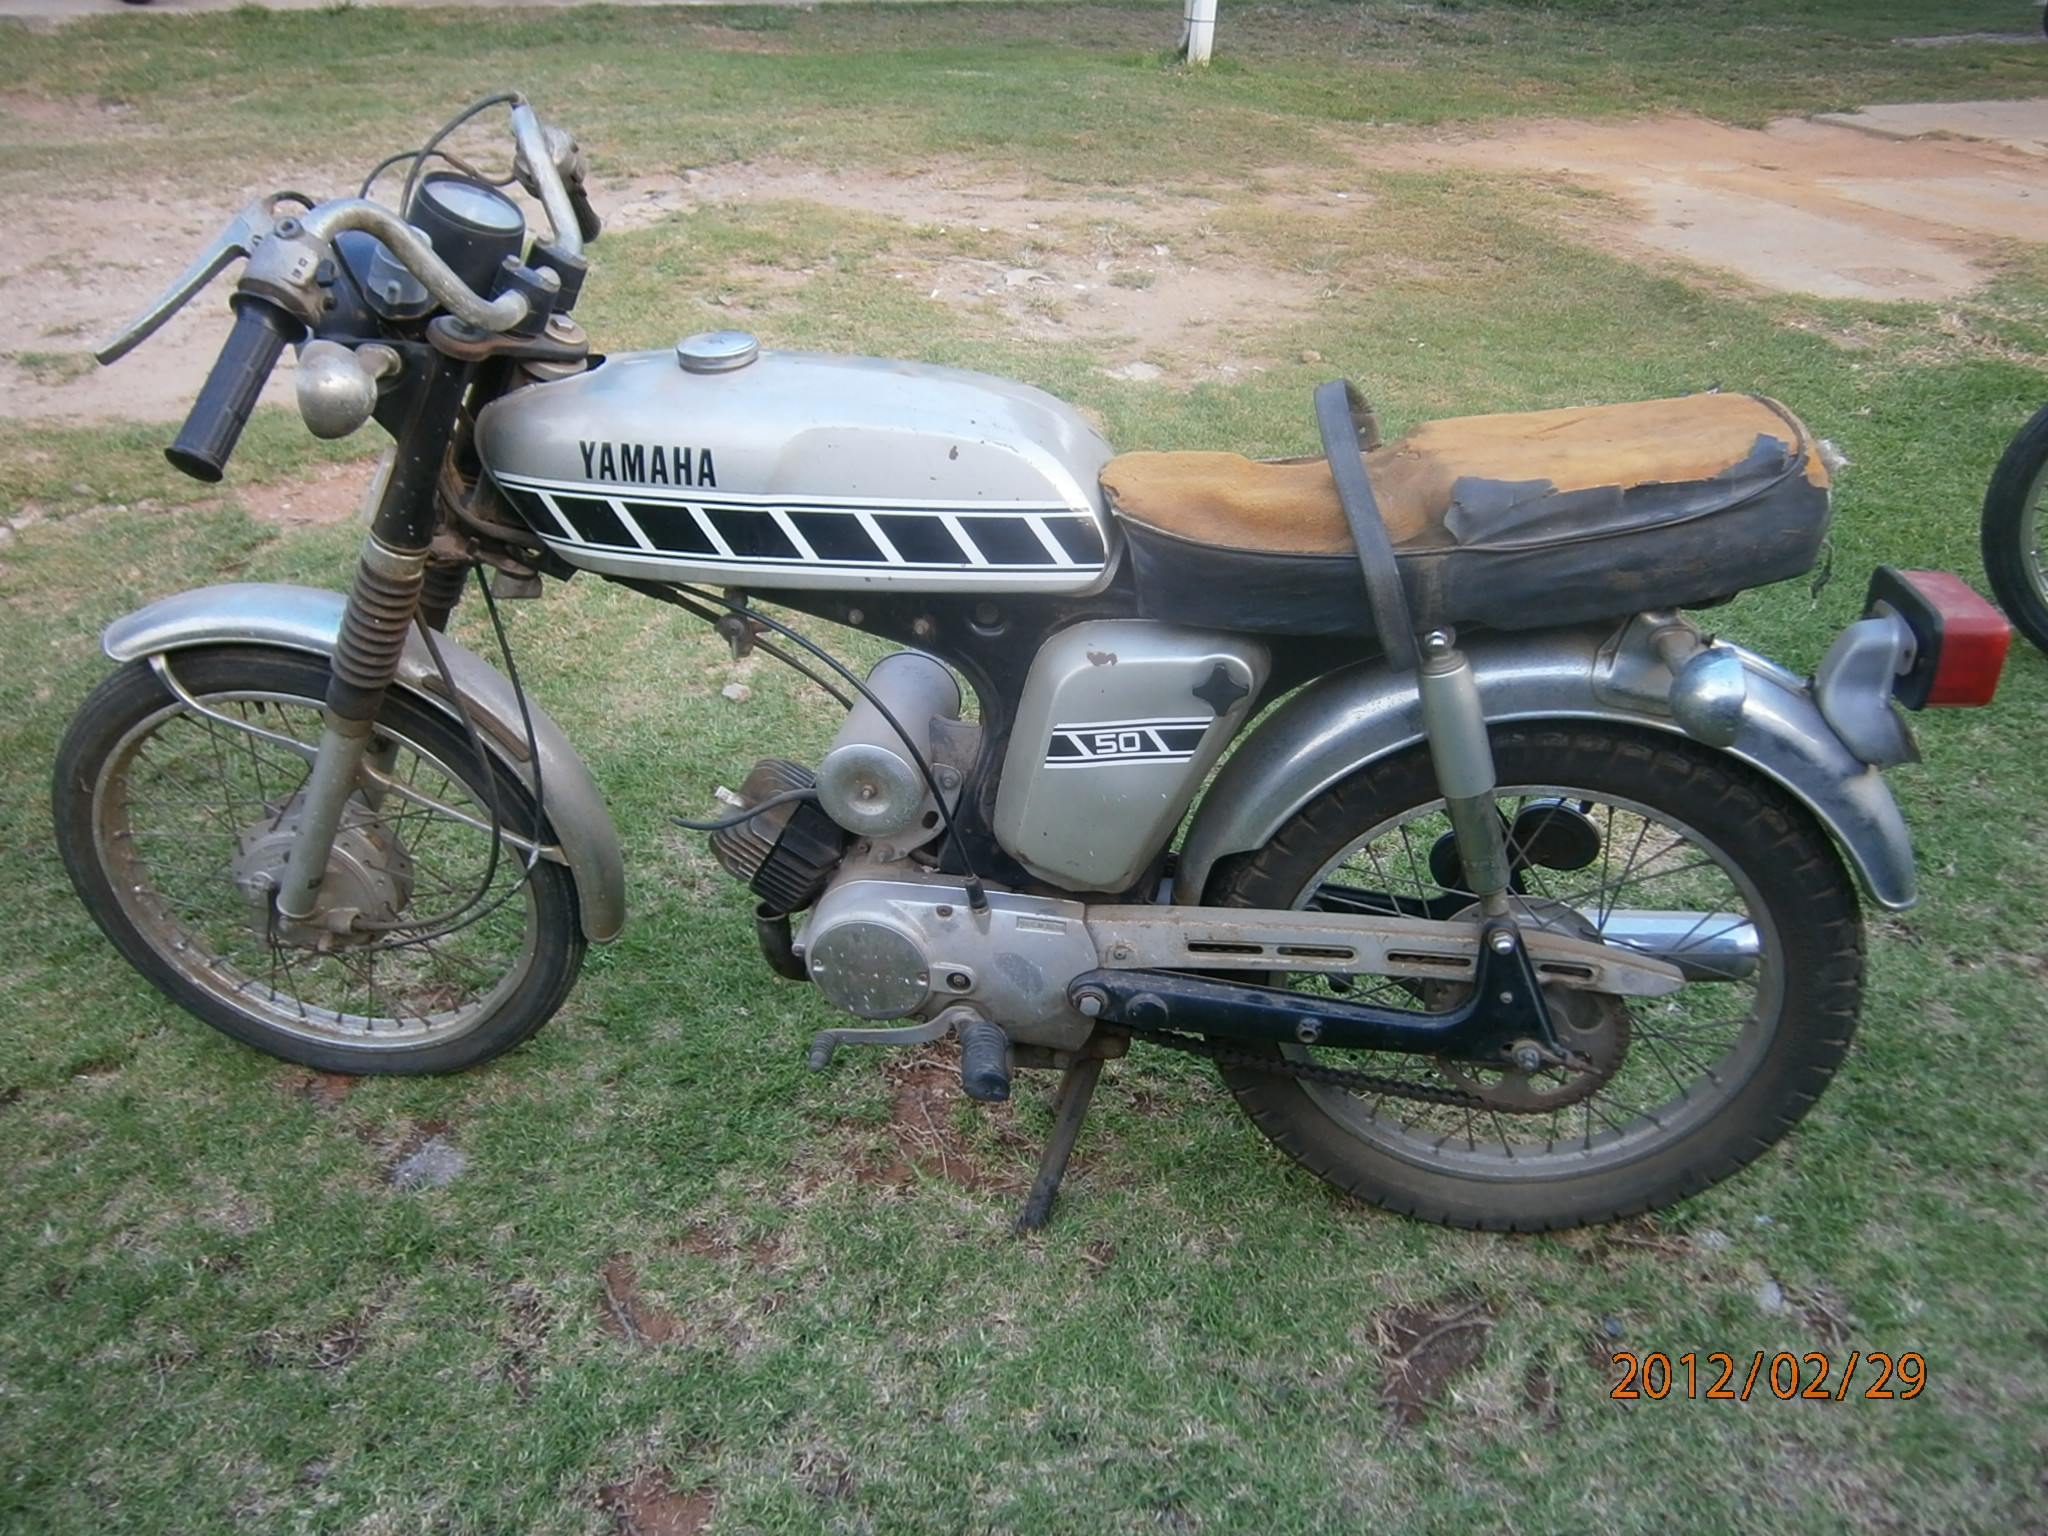 1976 Yamaha FS3 before pic 1